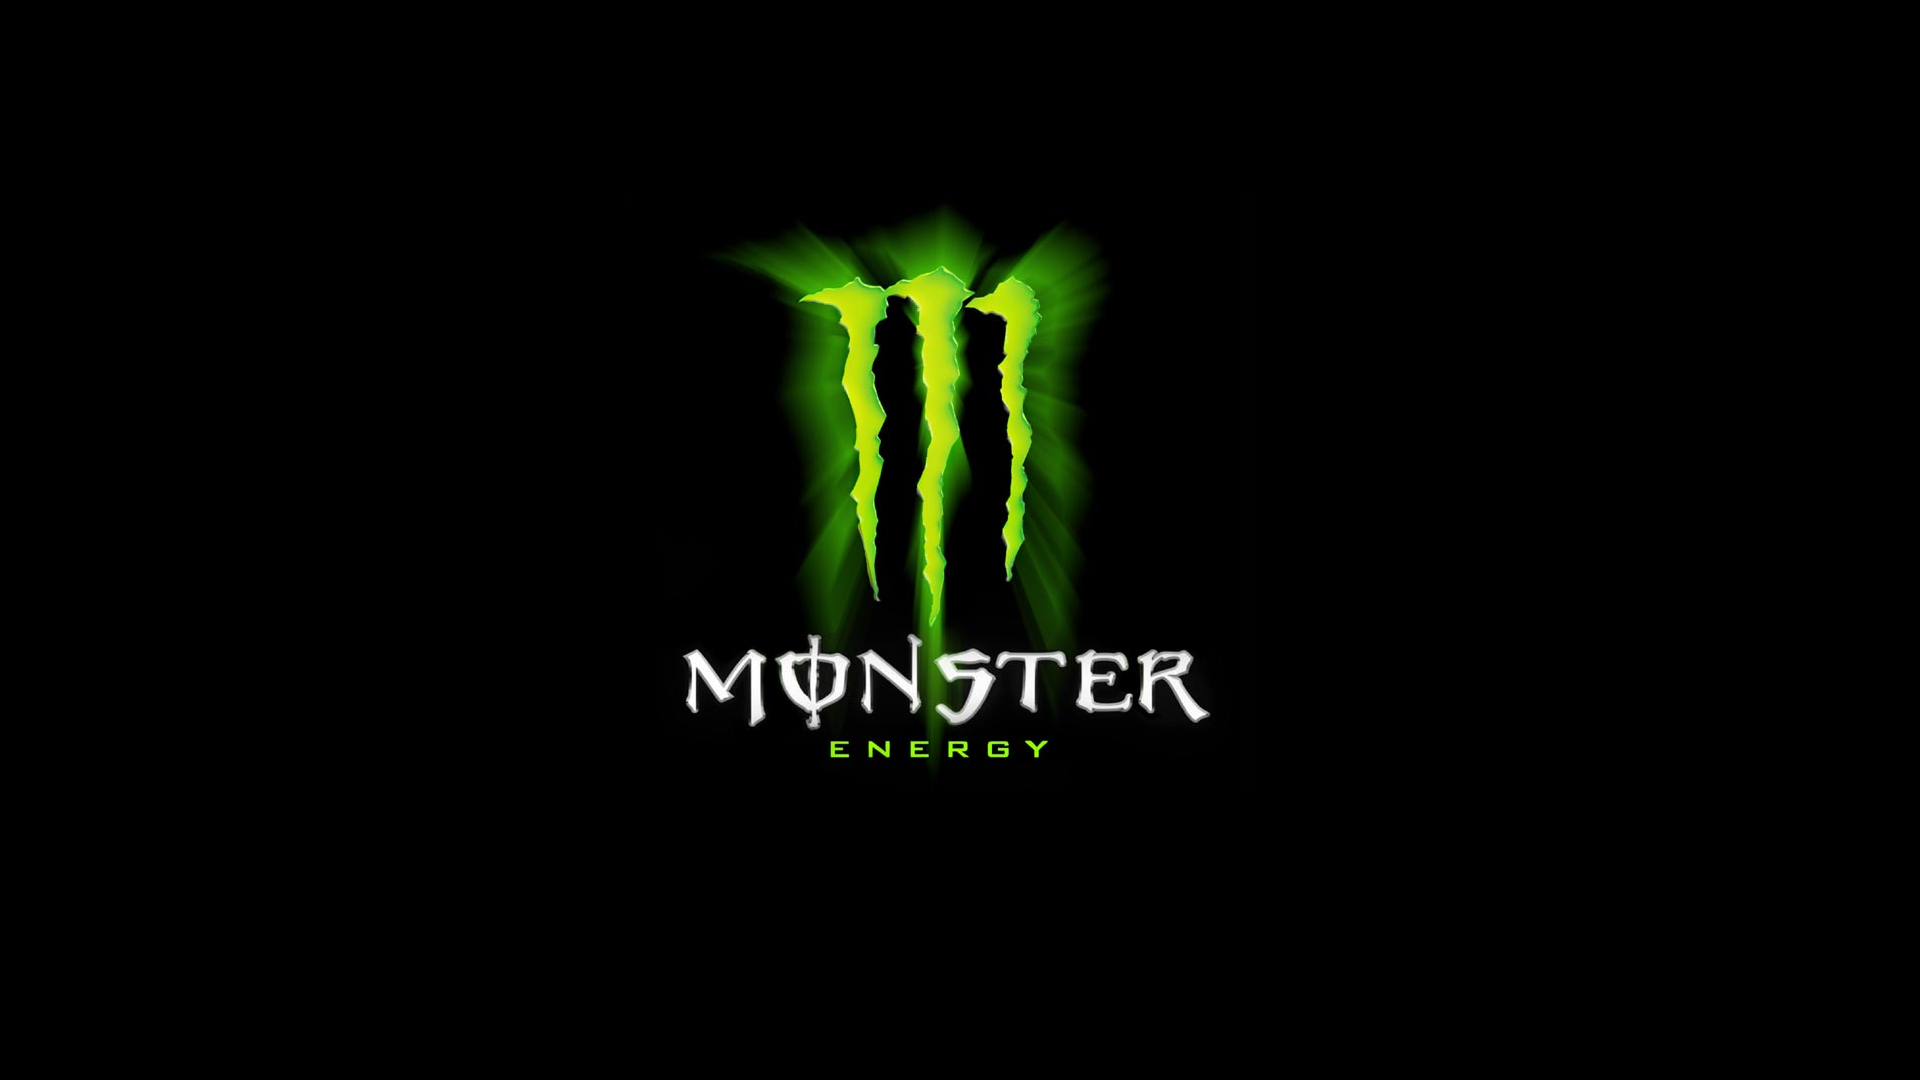 Monster Energy, (1920x1080-0.26 Mb)